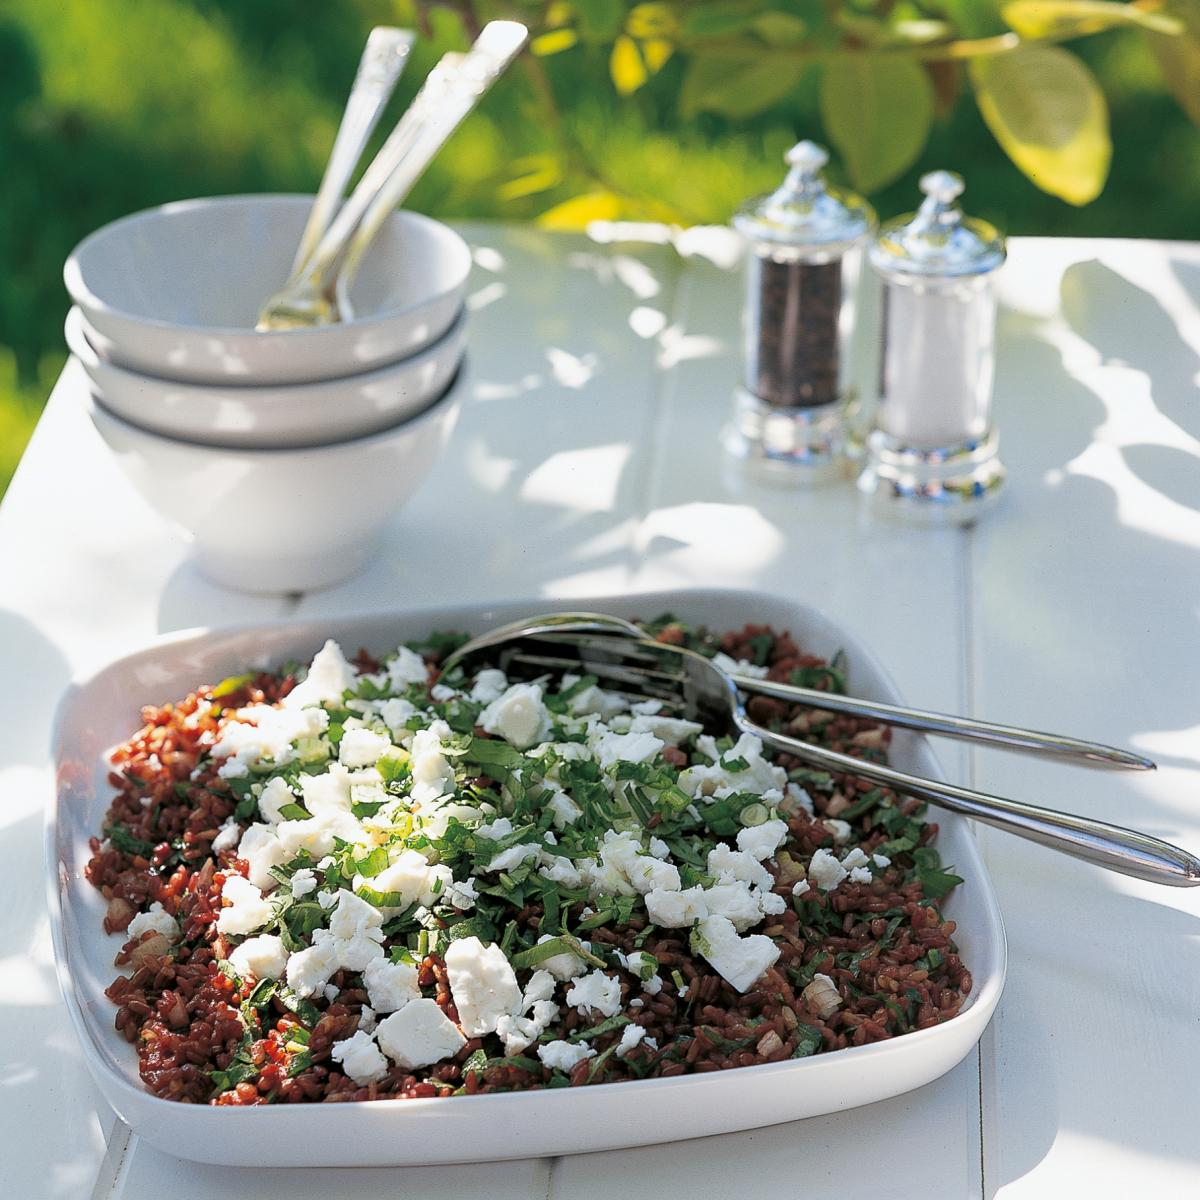 Htc camargue red rice salad with feta cheese